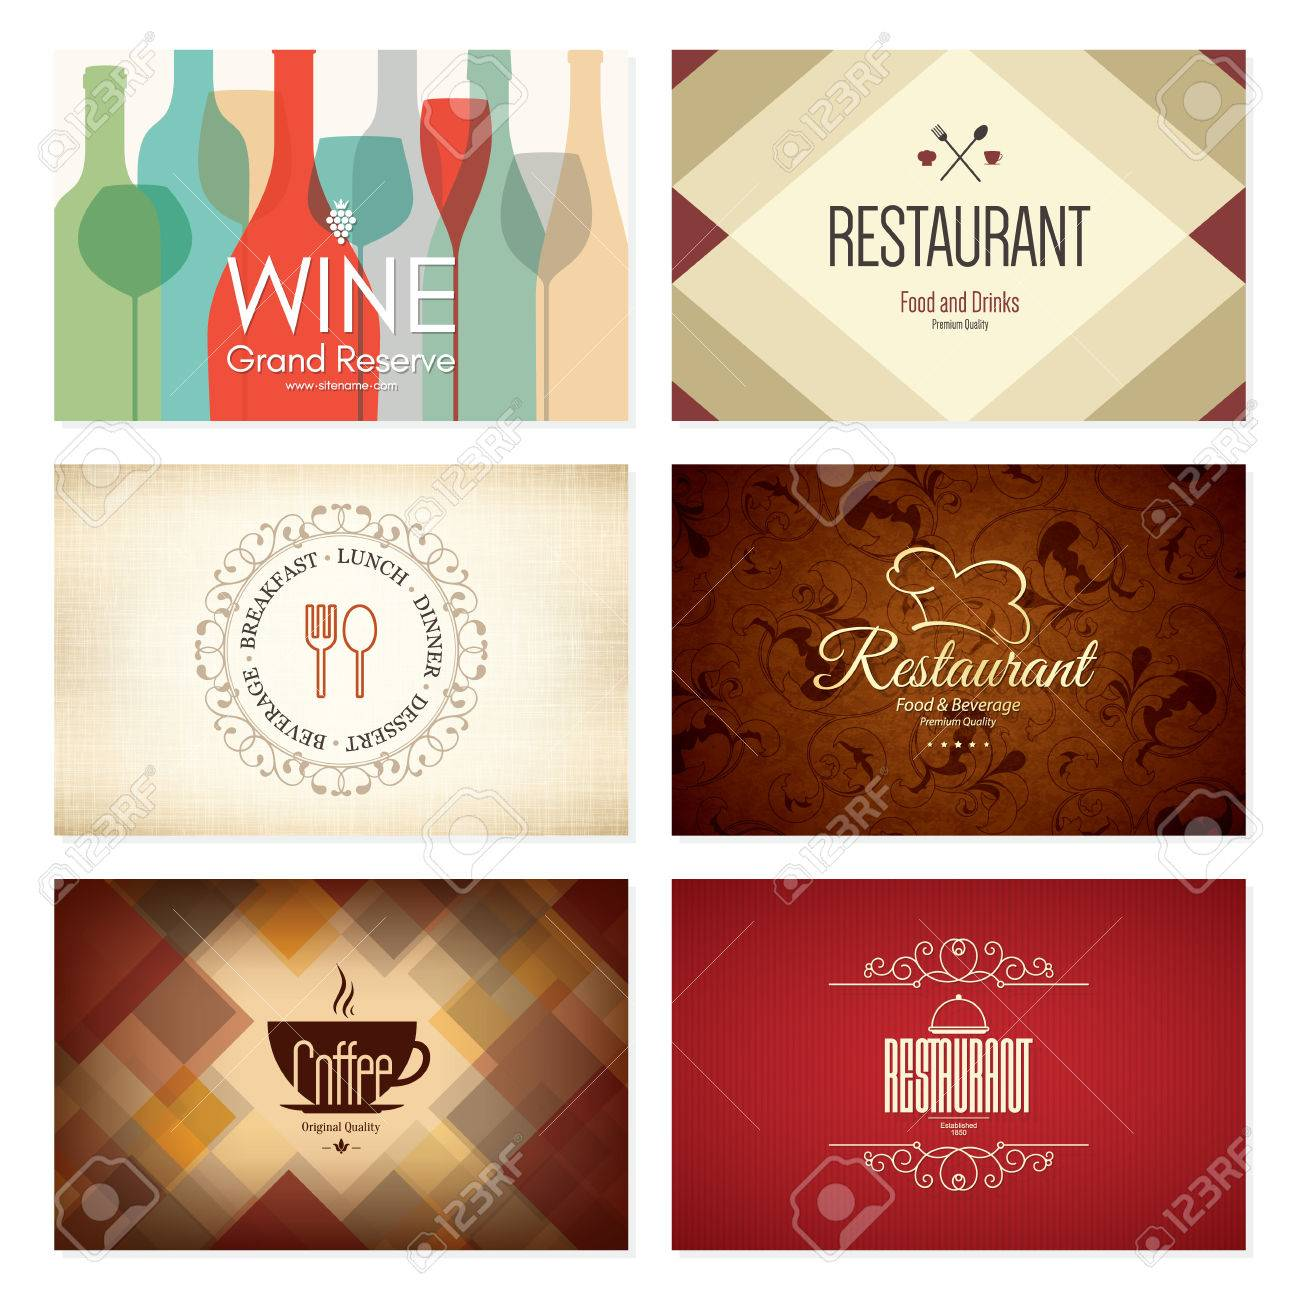 Business card set 6 bright visiting cards food and drink theme business card set 6 bright visiting cards food and drink theme for cafe reheart Image collections